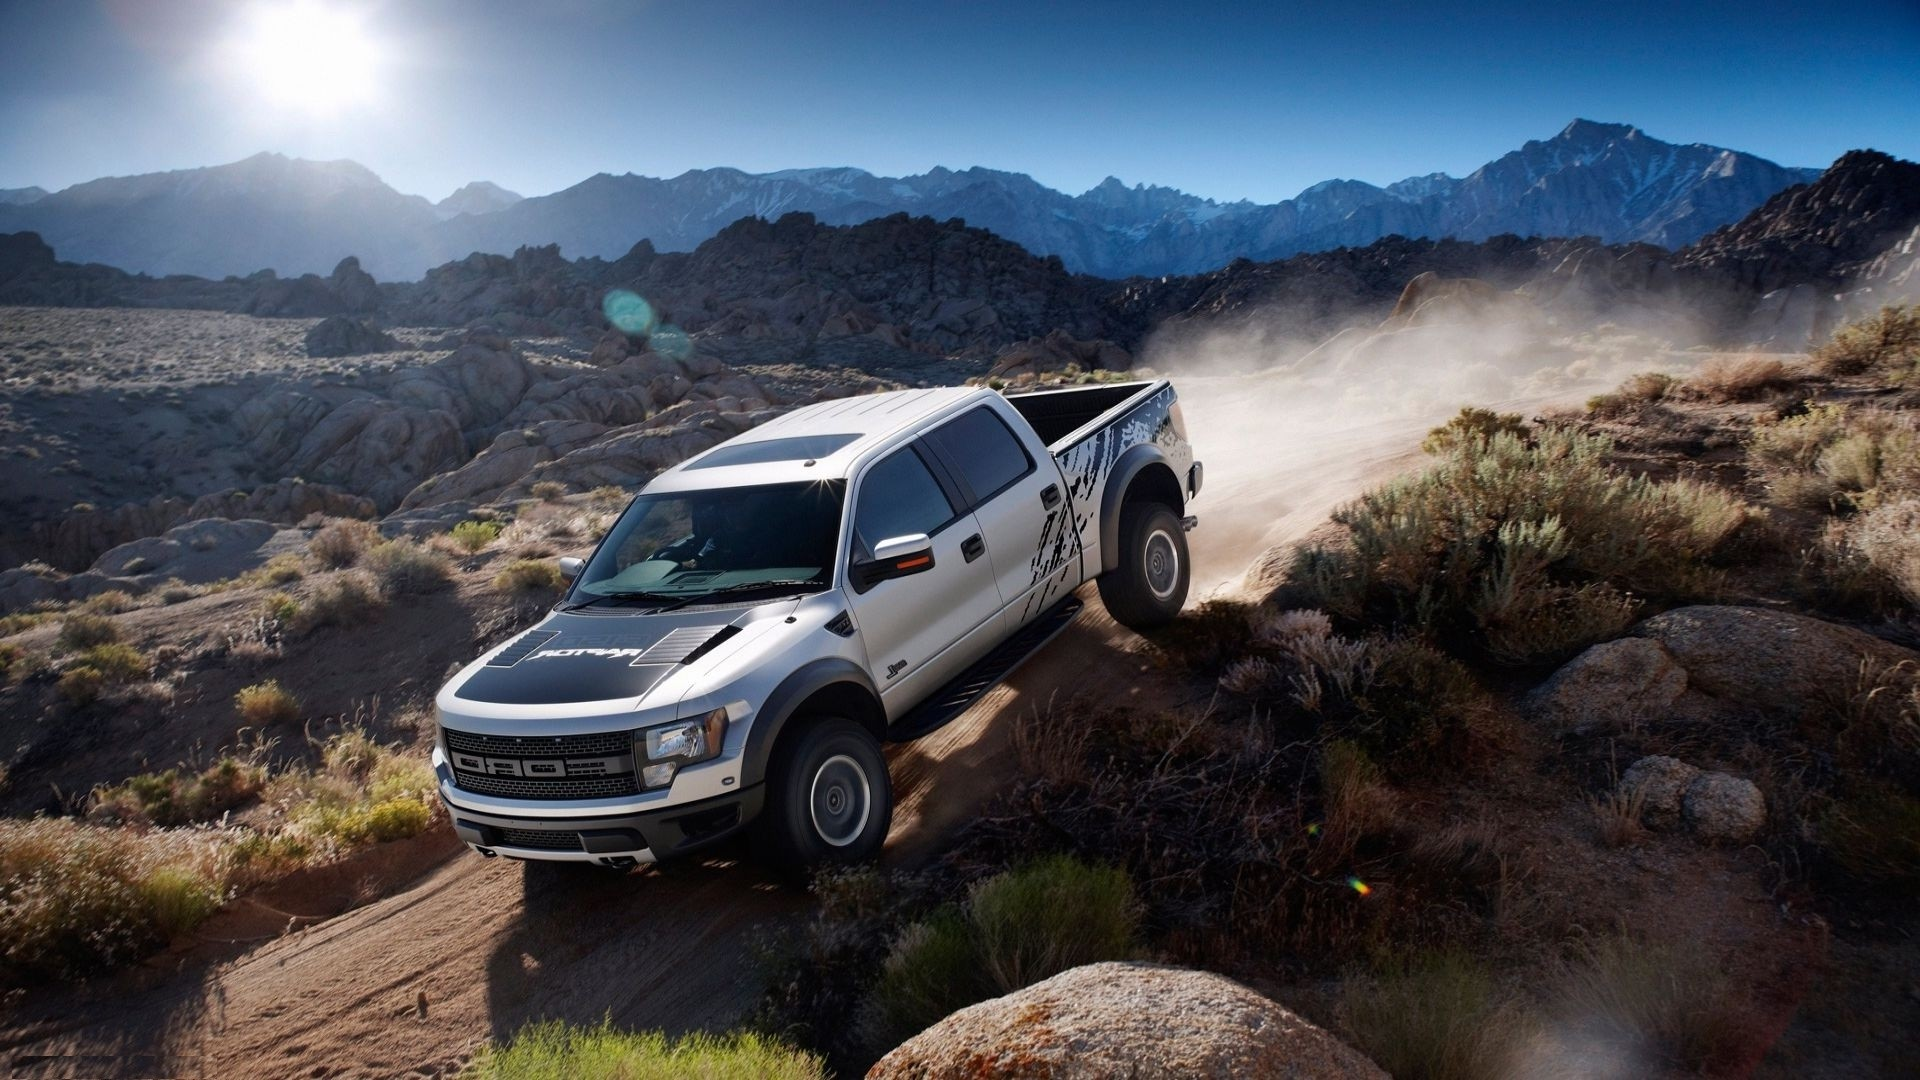 Lifted Truck Iphone Wallpaper Ford Raptor Wallpaper Hd 74 Images